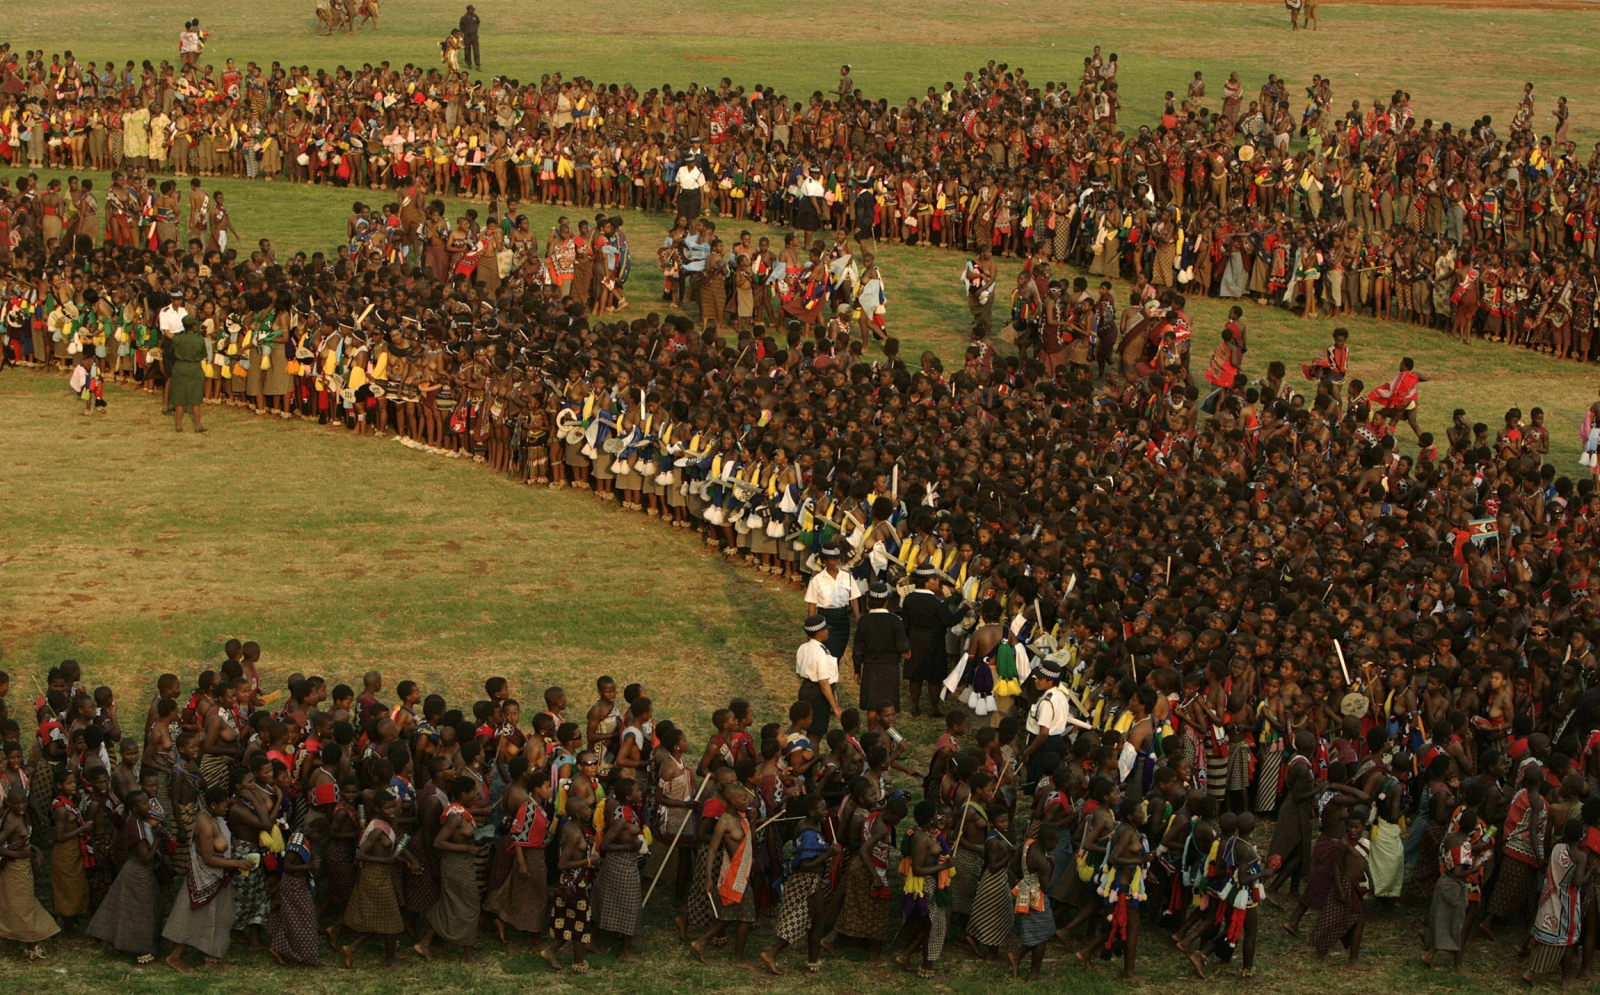 Bare-breasted virgins competing for King Mswati III's eye take part in a traditional Reed Dance at Ludzidzini, the royal palace in Swaziland August 31, 2008.